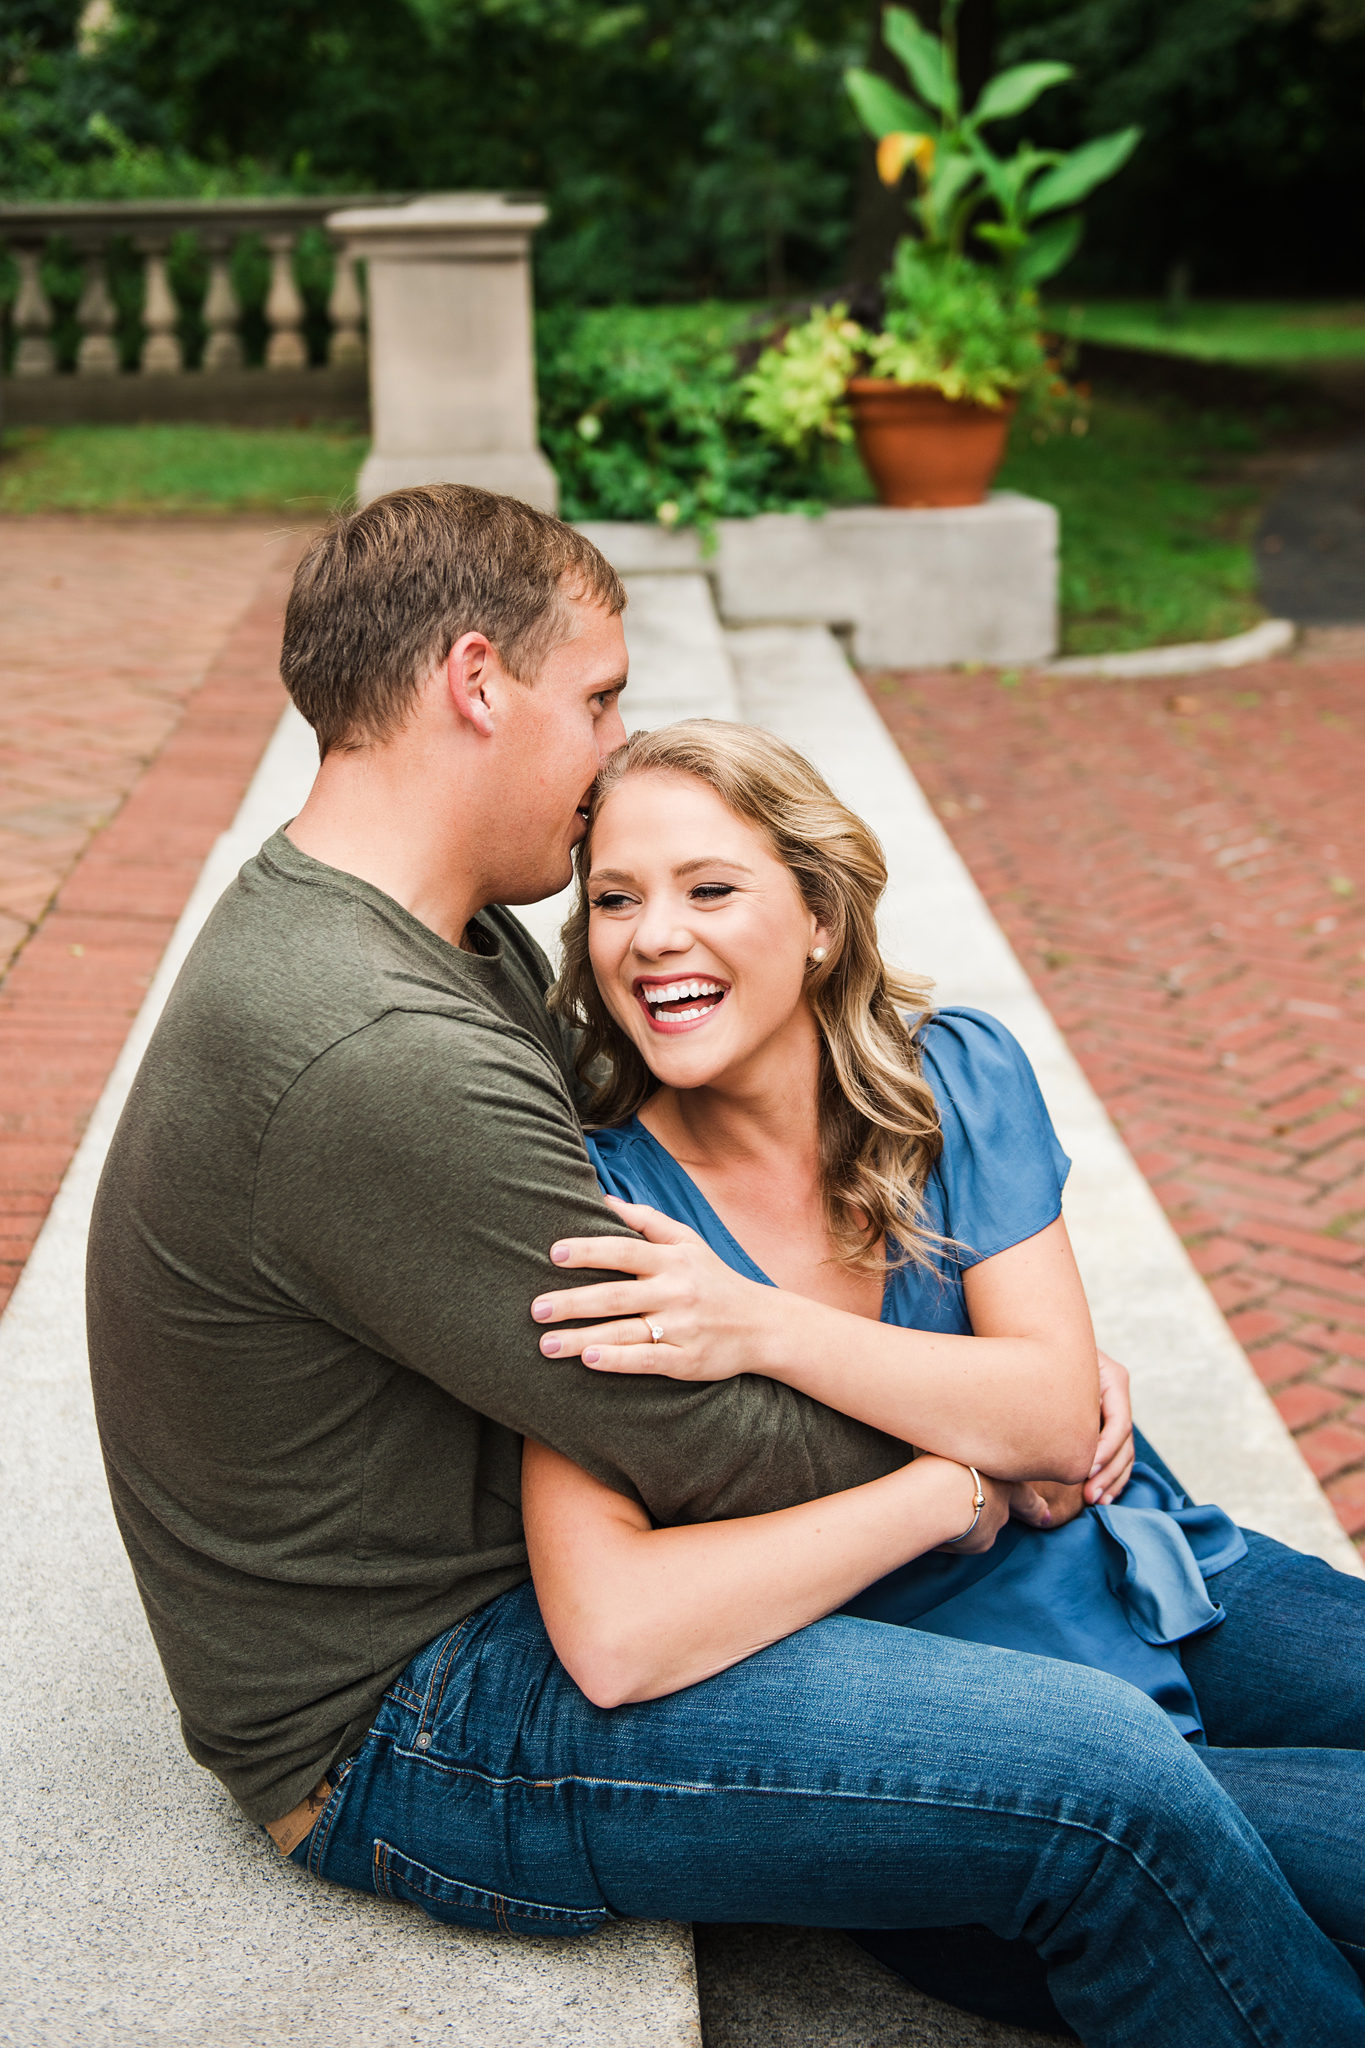 George_Eastman_House_Rochester_Yacht_Club_Rochester_Engagement_Session_JILL_STUDIO_Rochester_NY_Photographer_DSC_8038.jpg